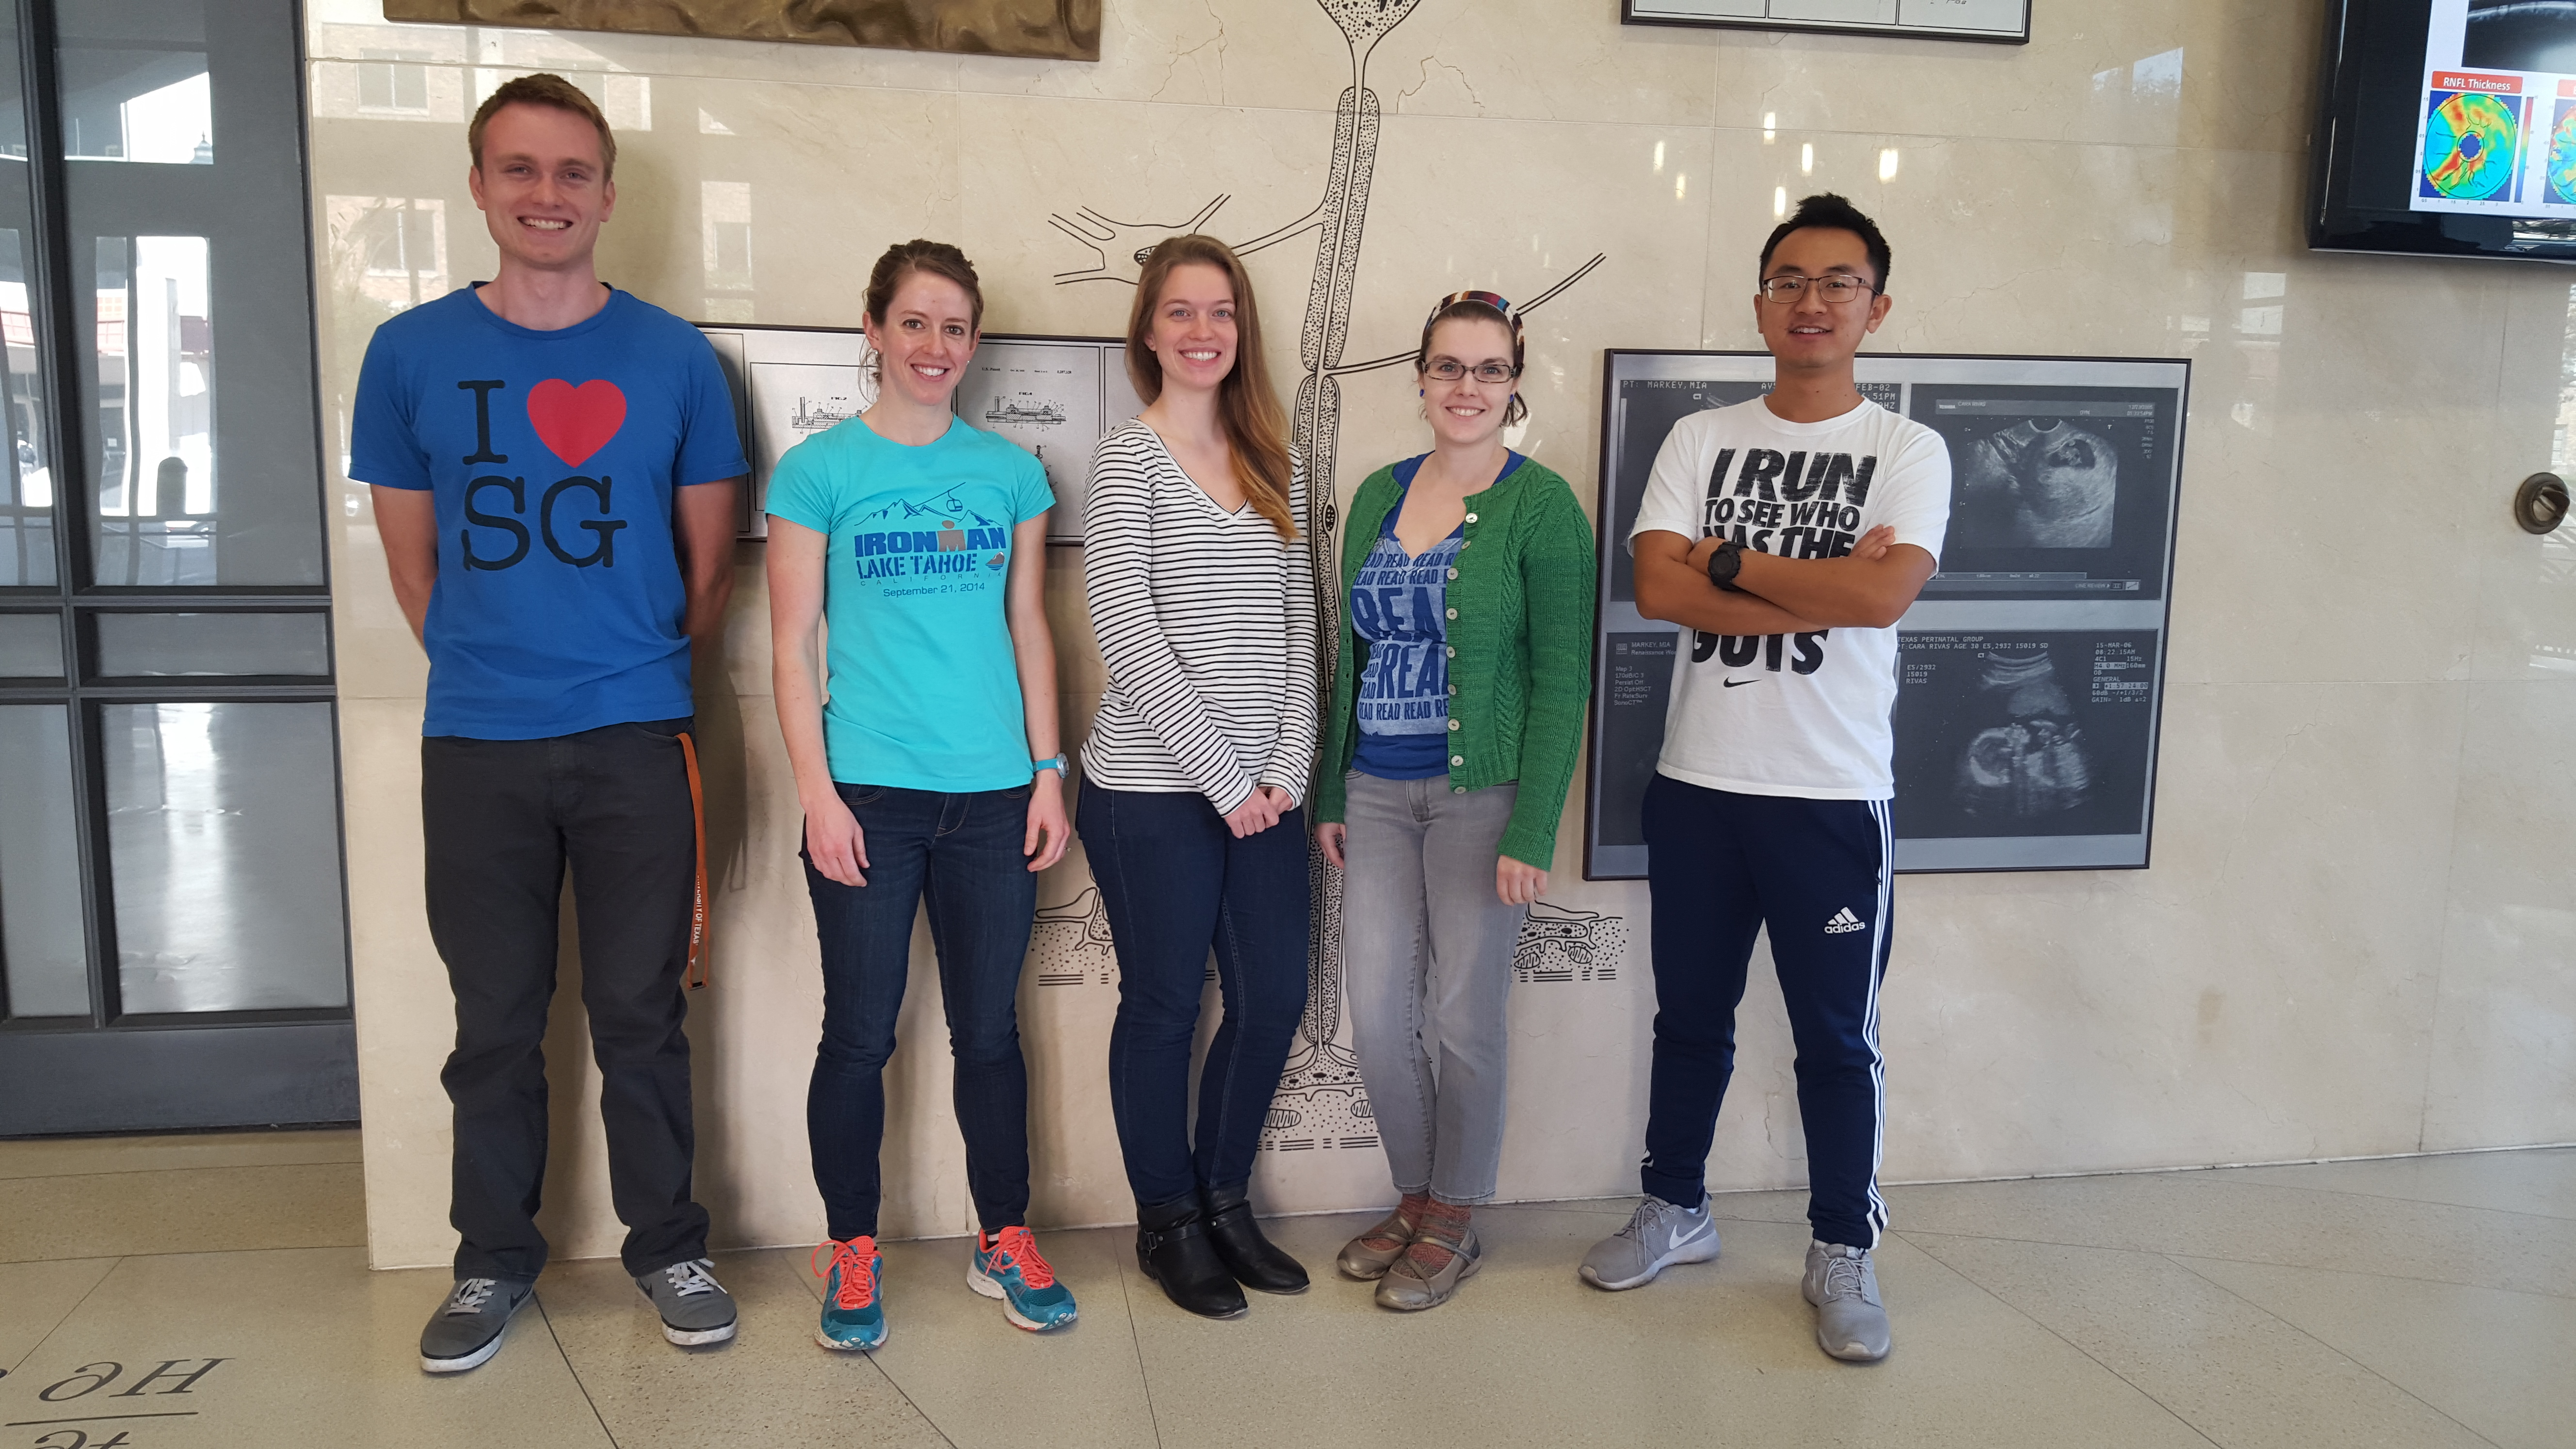 The current Zoldan Lab. From left to right: Cody Crosby (1st year), Alicia Allen (3rd year), Julie Strickland (1st year), Alysa Joaquin (3rd year), and Chengyi Tu (3rd year)